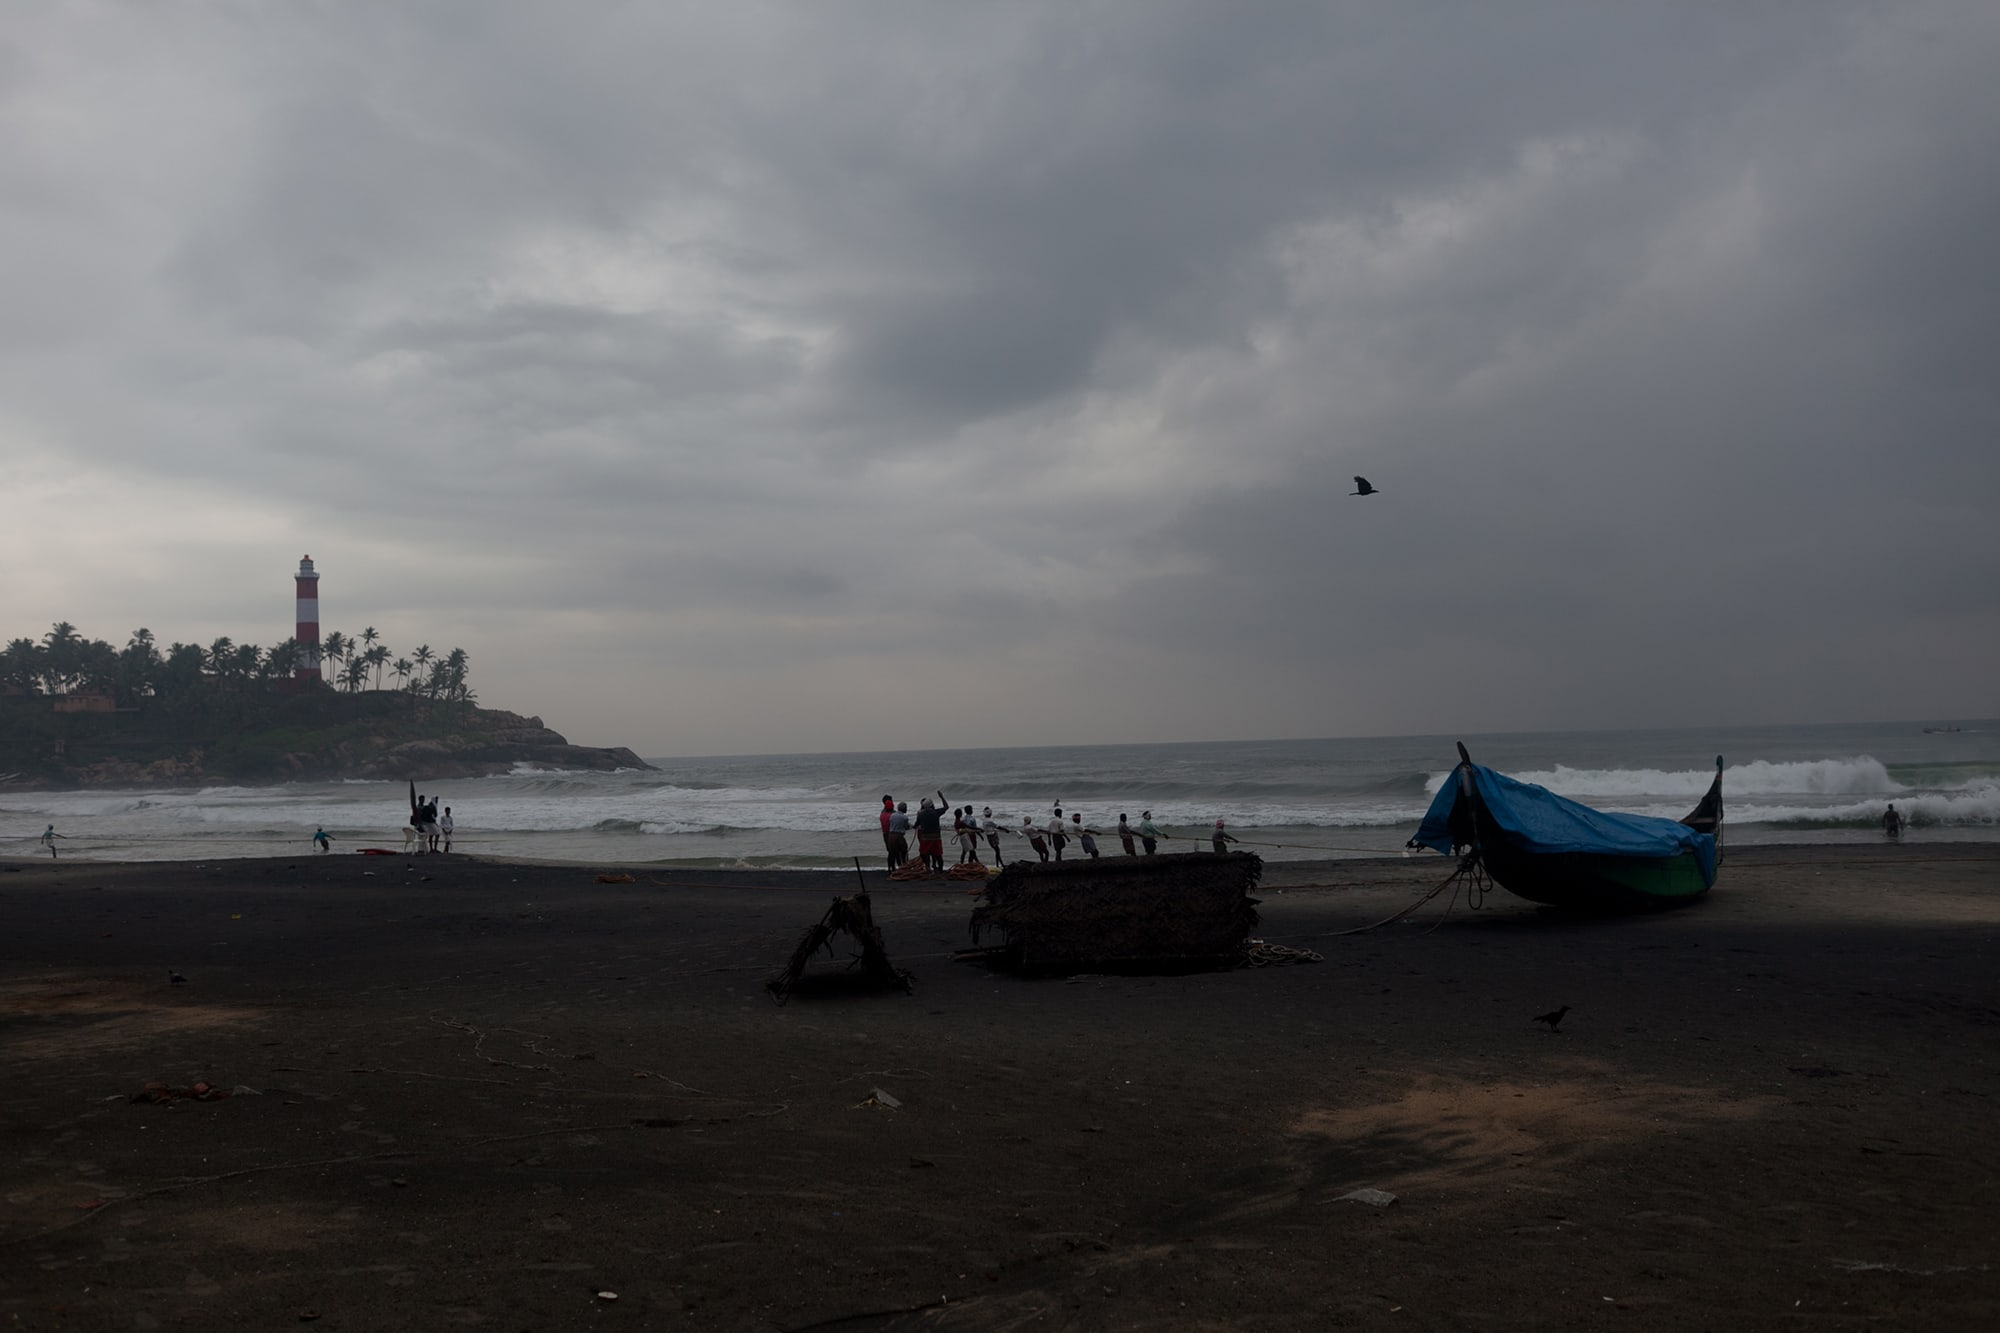 Fishermen on the beach in Kovalam, India